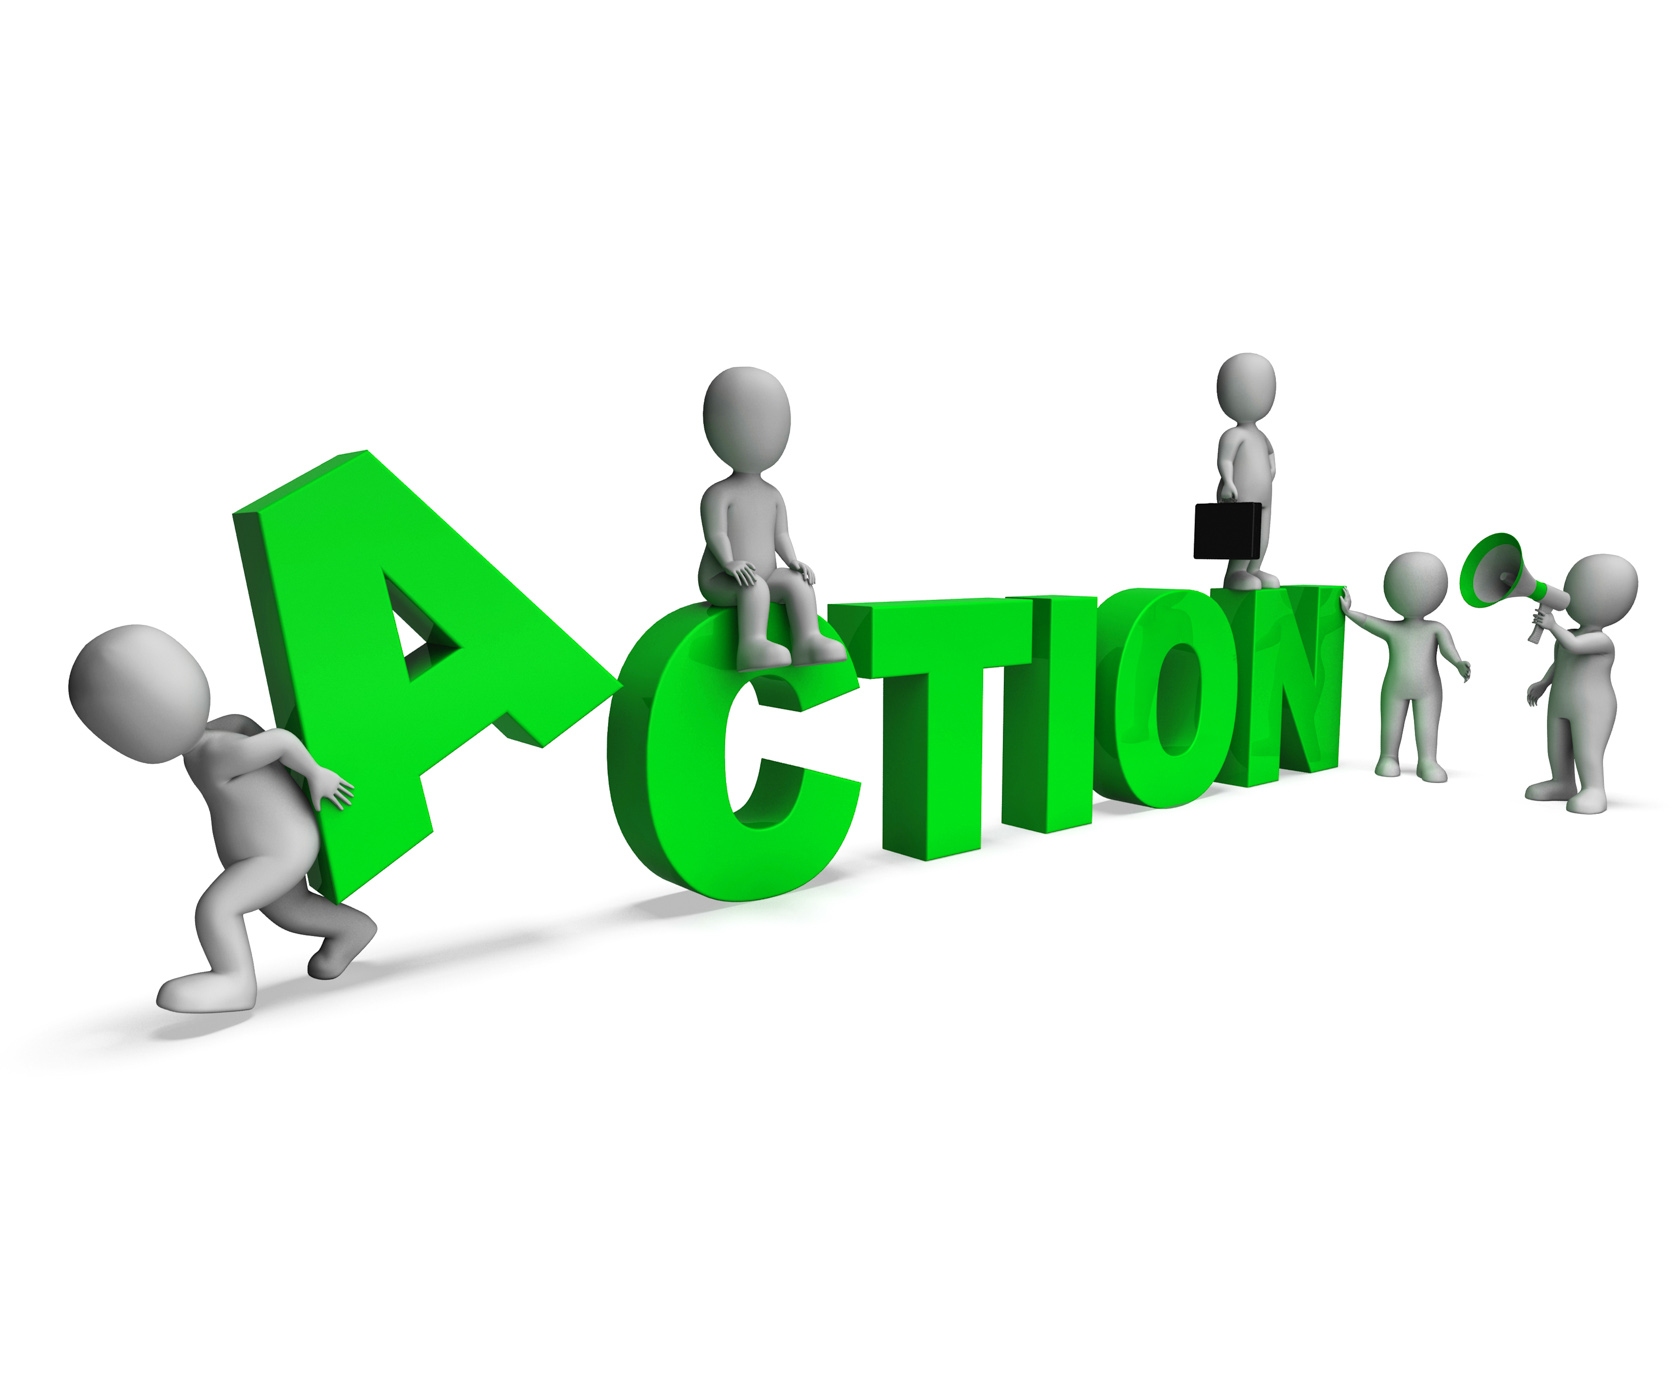 Action Characters Shows Motivated Proactive Or Activity, Inspiration, Go, Encouragement, Inspired, HQ Photo